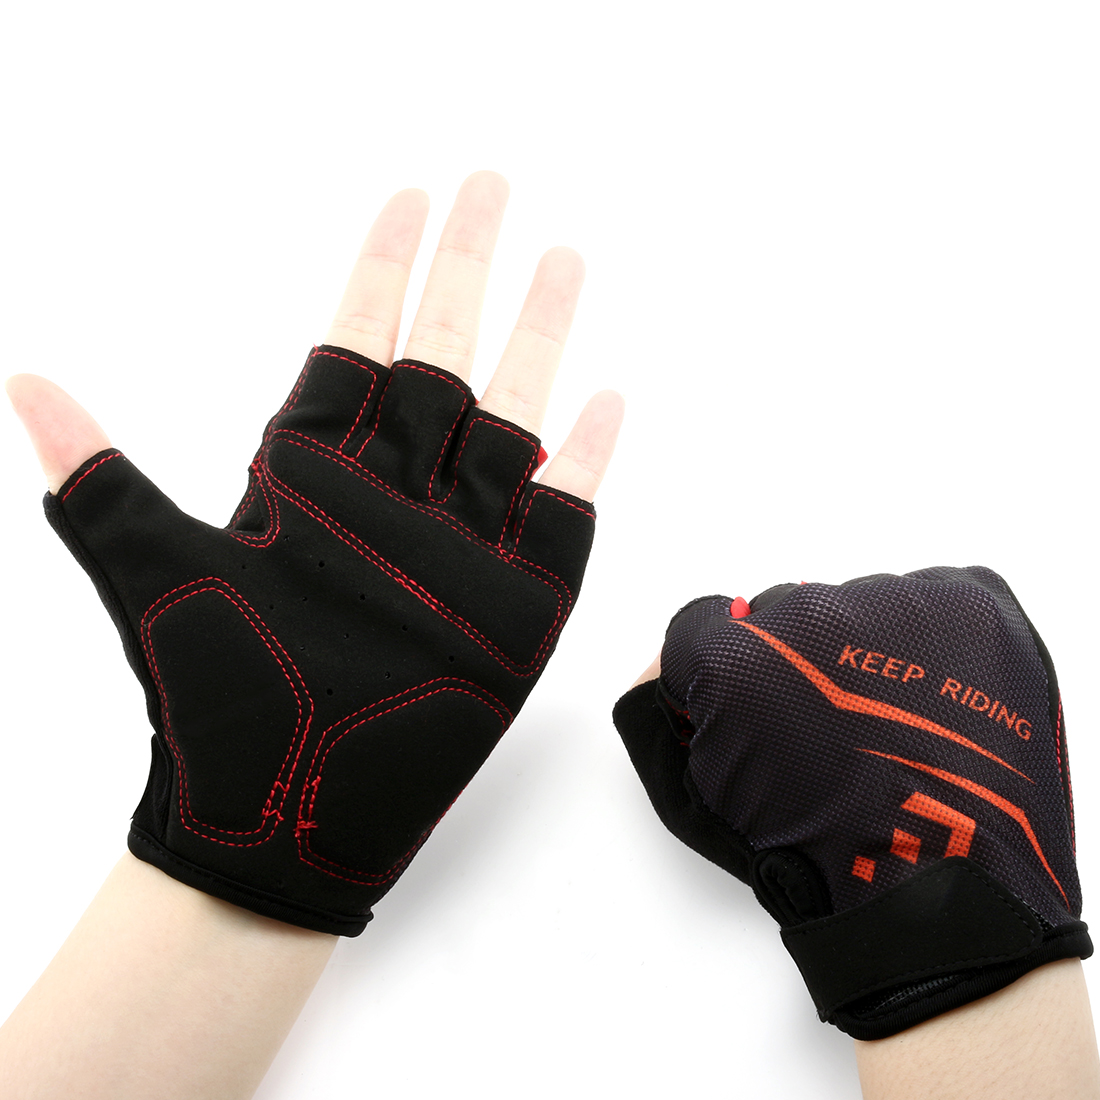 Outdoor Elasticized Fabric Sports Exercise Half Finger Cycling Gloves Palm Support Pair (Red XL)